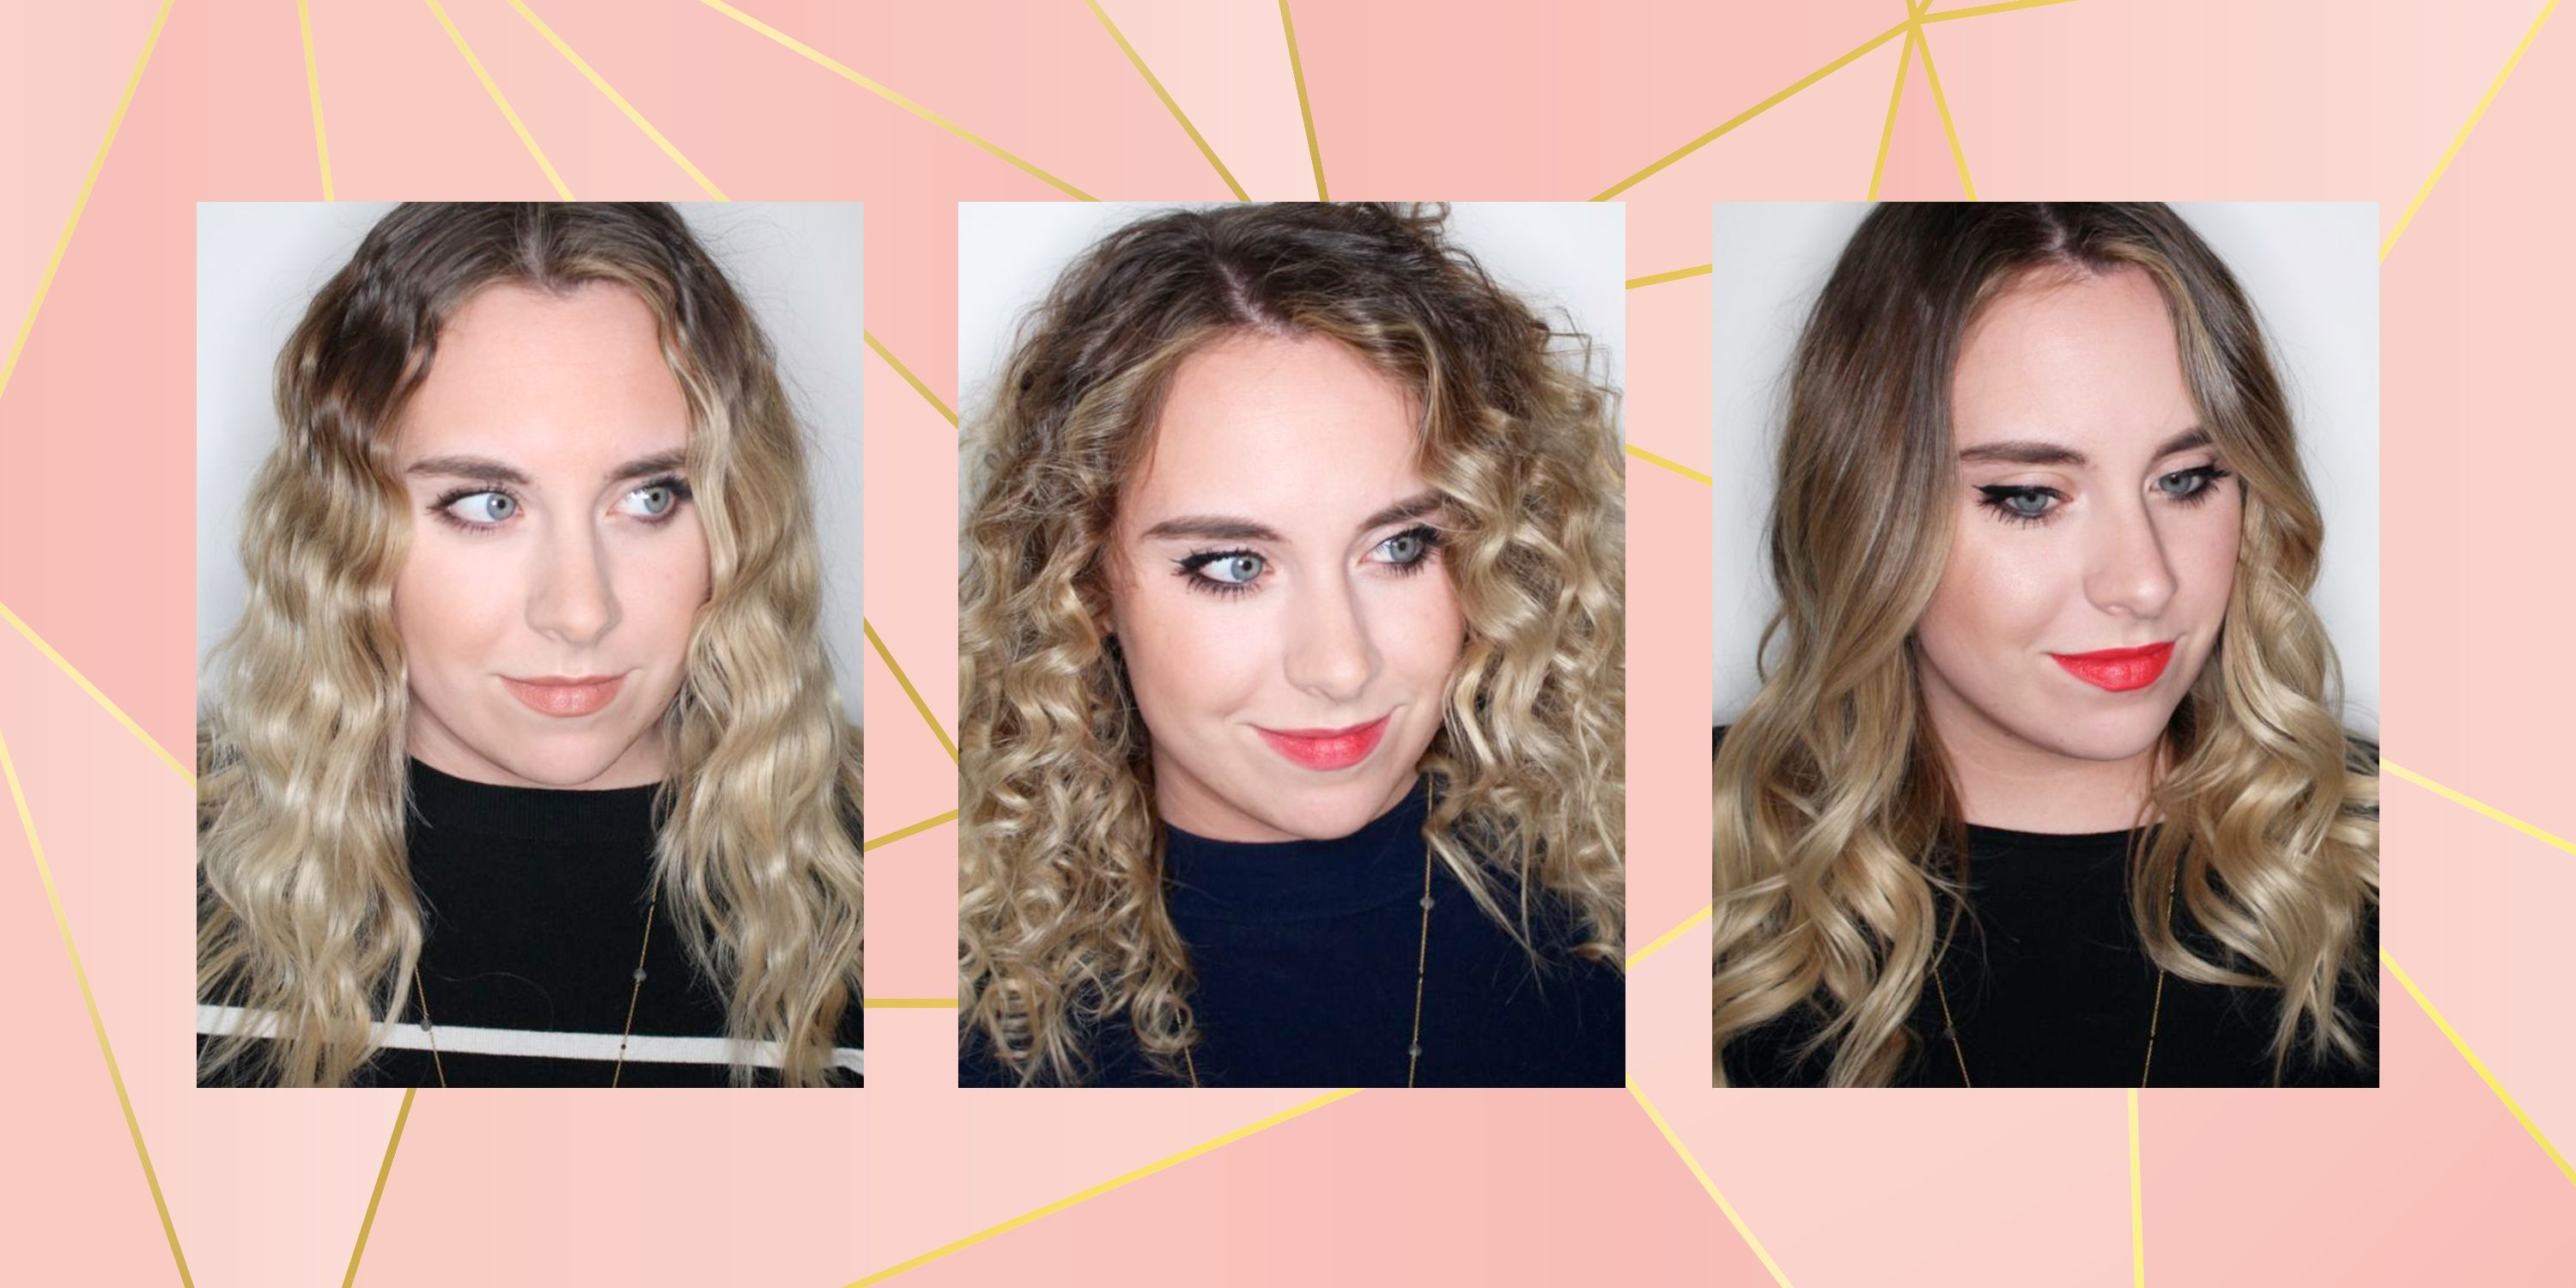 Best Curling Tongs 2019 What 11 Different Curlers Look Like Irl